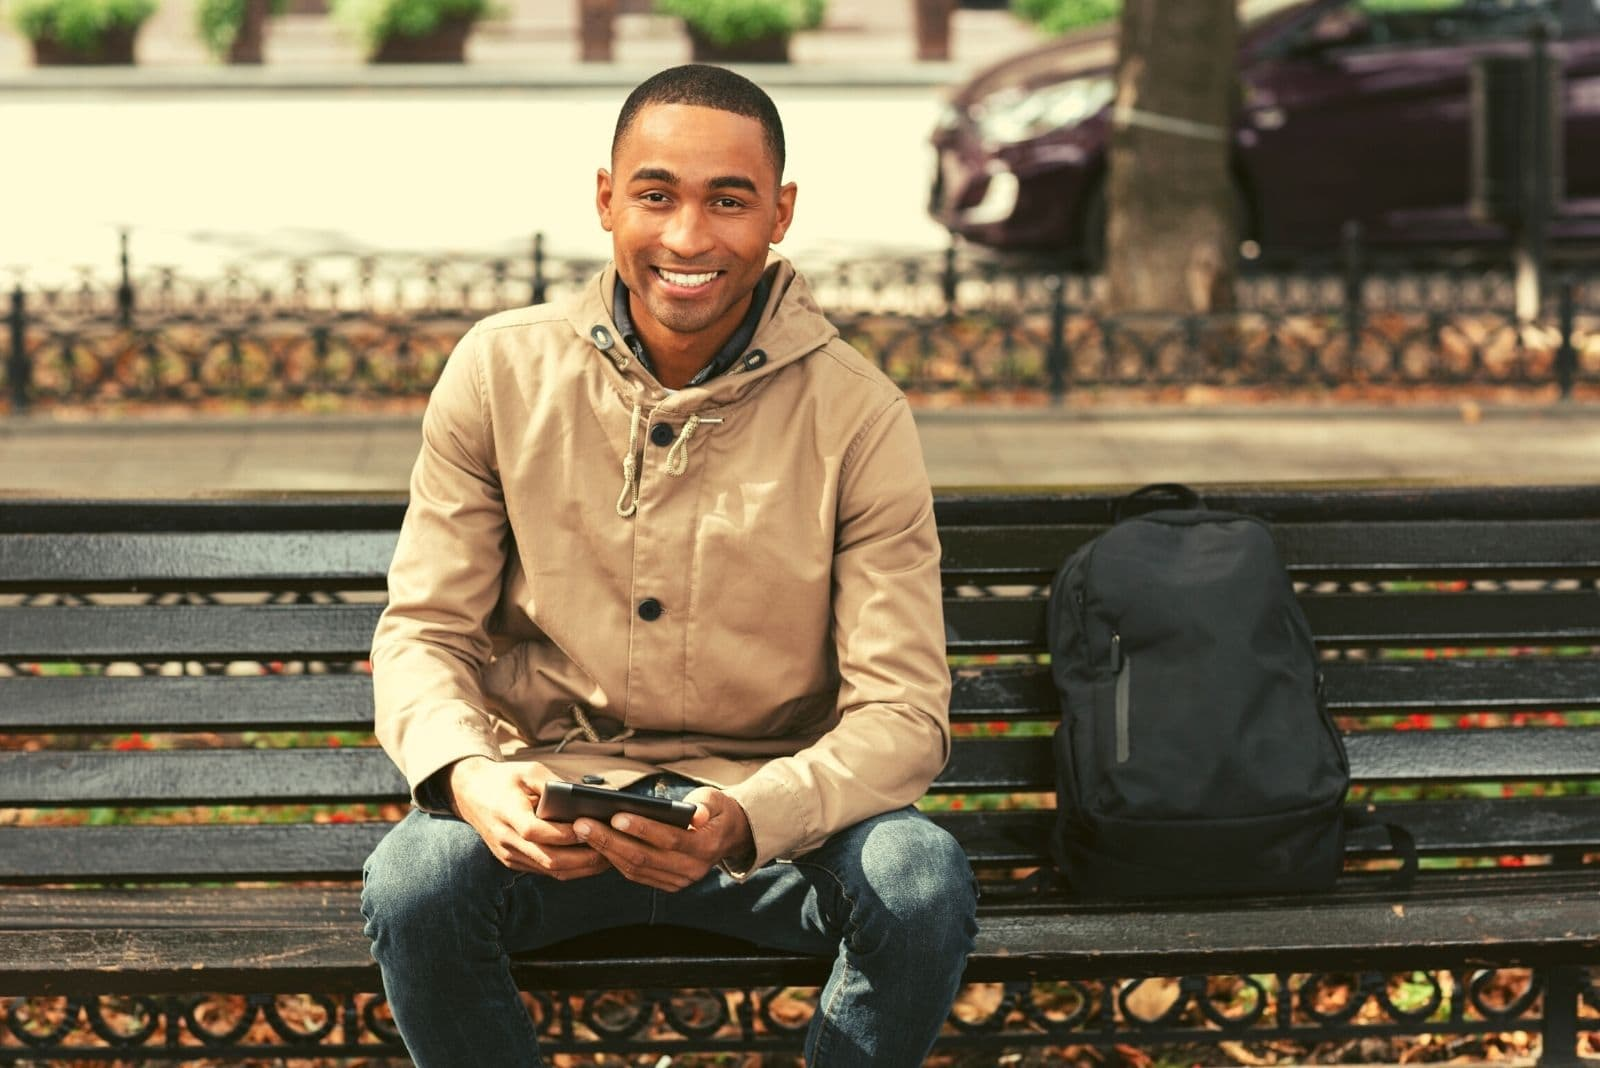 young smiling man using his tablet while sitting in the bench of the park and his bag beside him